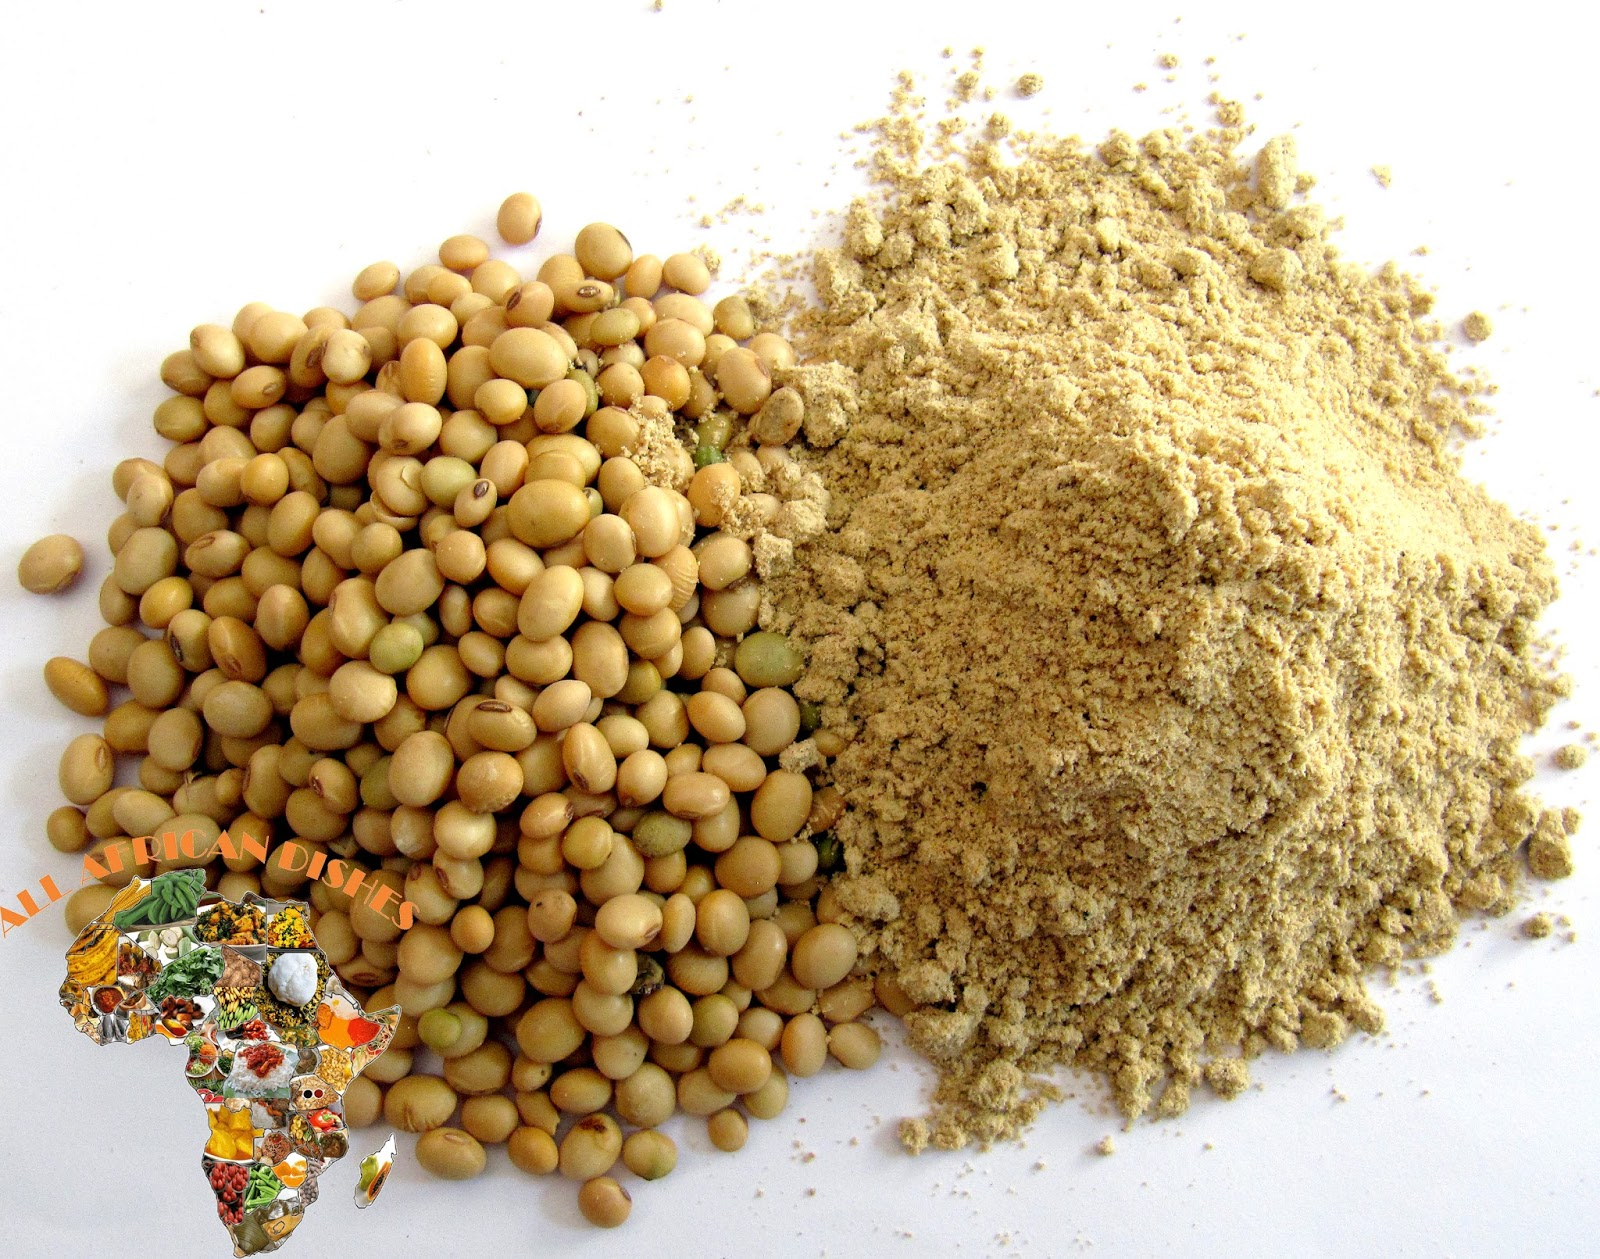 ALL AFRICAN DISHES: SOYA BEANS POWDER (MAINLY FOR INFANTS)1600 x 1259 jpeg 570kB